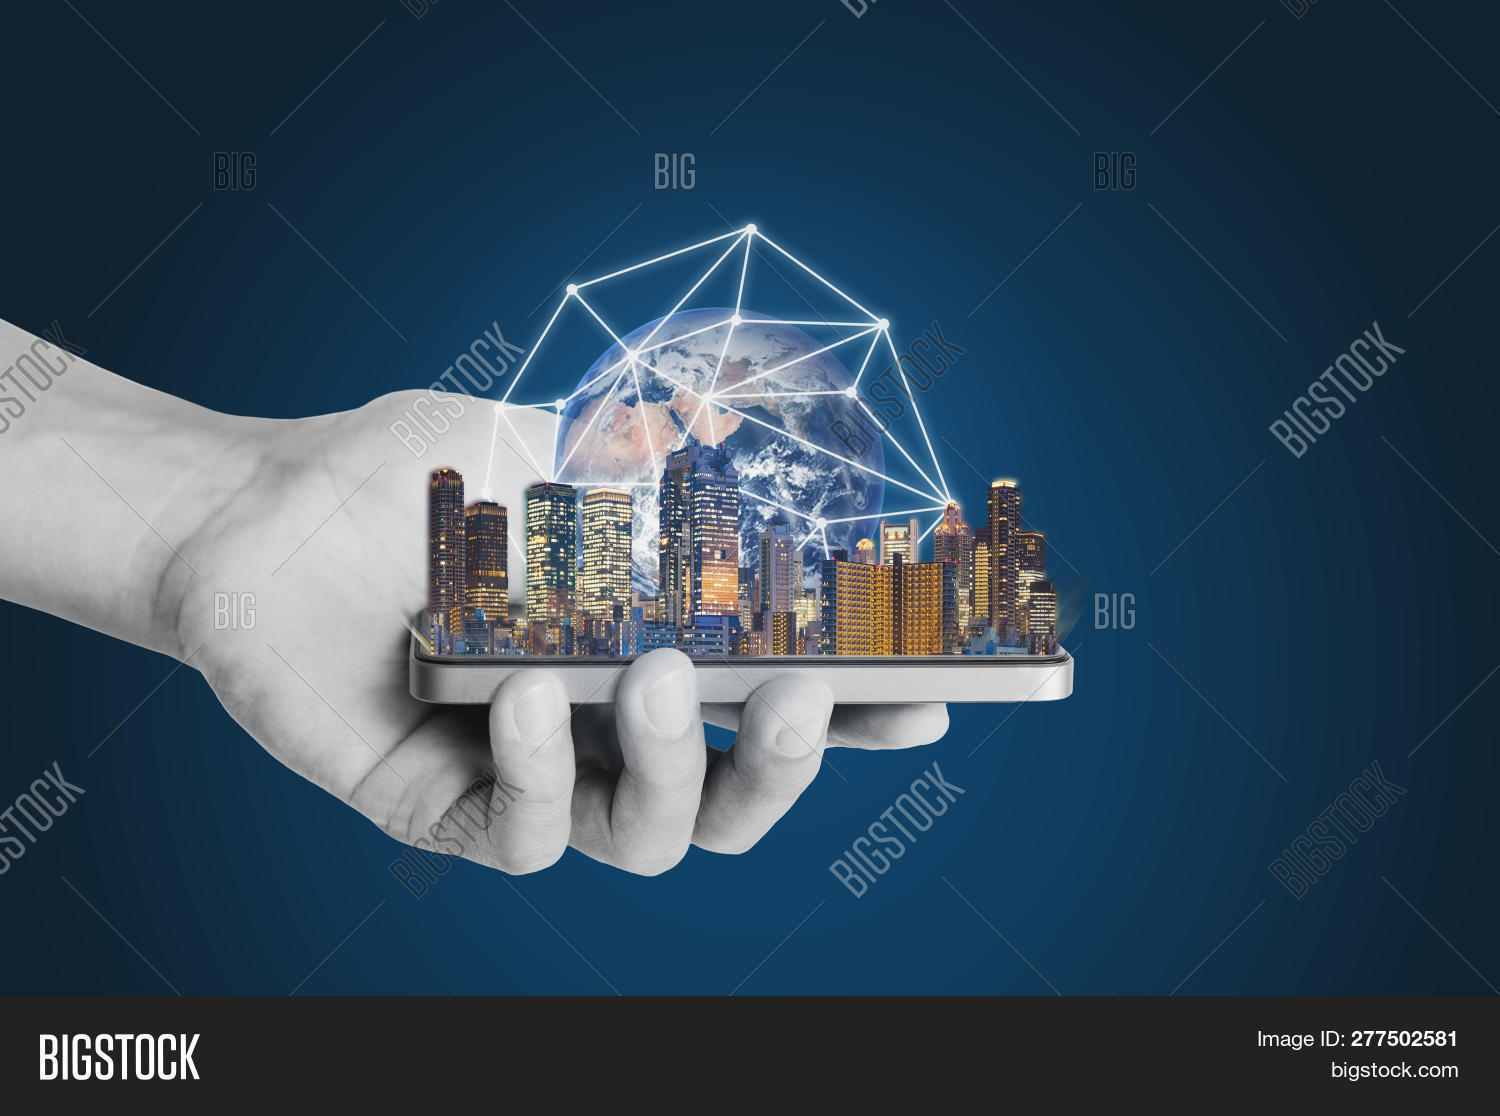 application,augmented,background,blockchain,blue,building,business,city,communication,concept,connect,connection,cyberspace,data,development,device,digital,education,electronic,energy,estate,futuristic,global,globe,hand,holding,hologram,information,innovation,internet,invest,investment,media,mobile,modern,network,networking,phone,real,reality,smart,smartphone,social,system,technology,telecommunication,urban,using,world,worldwide